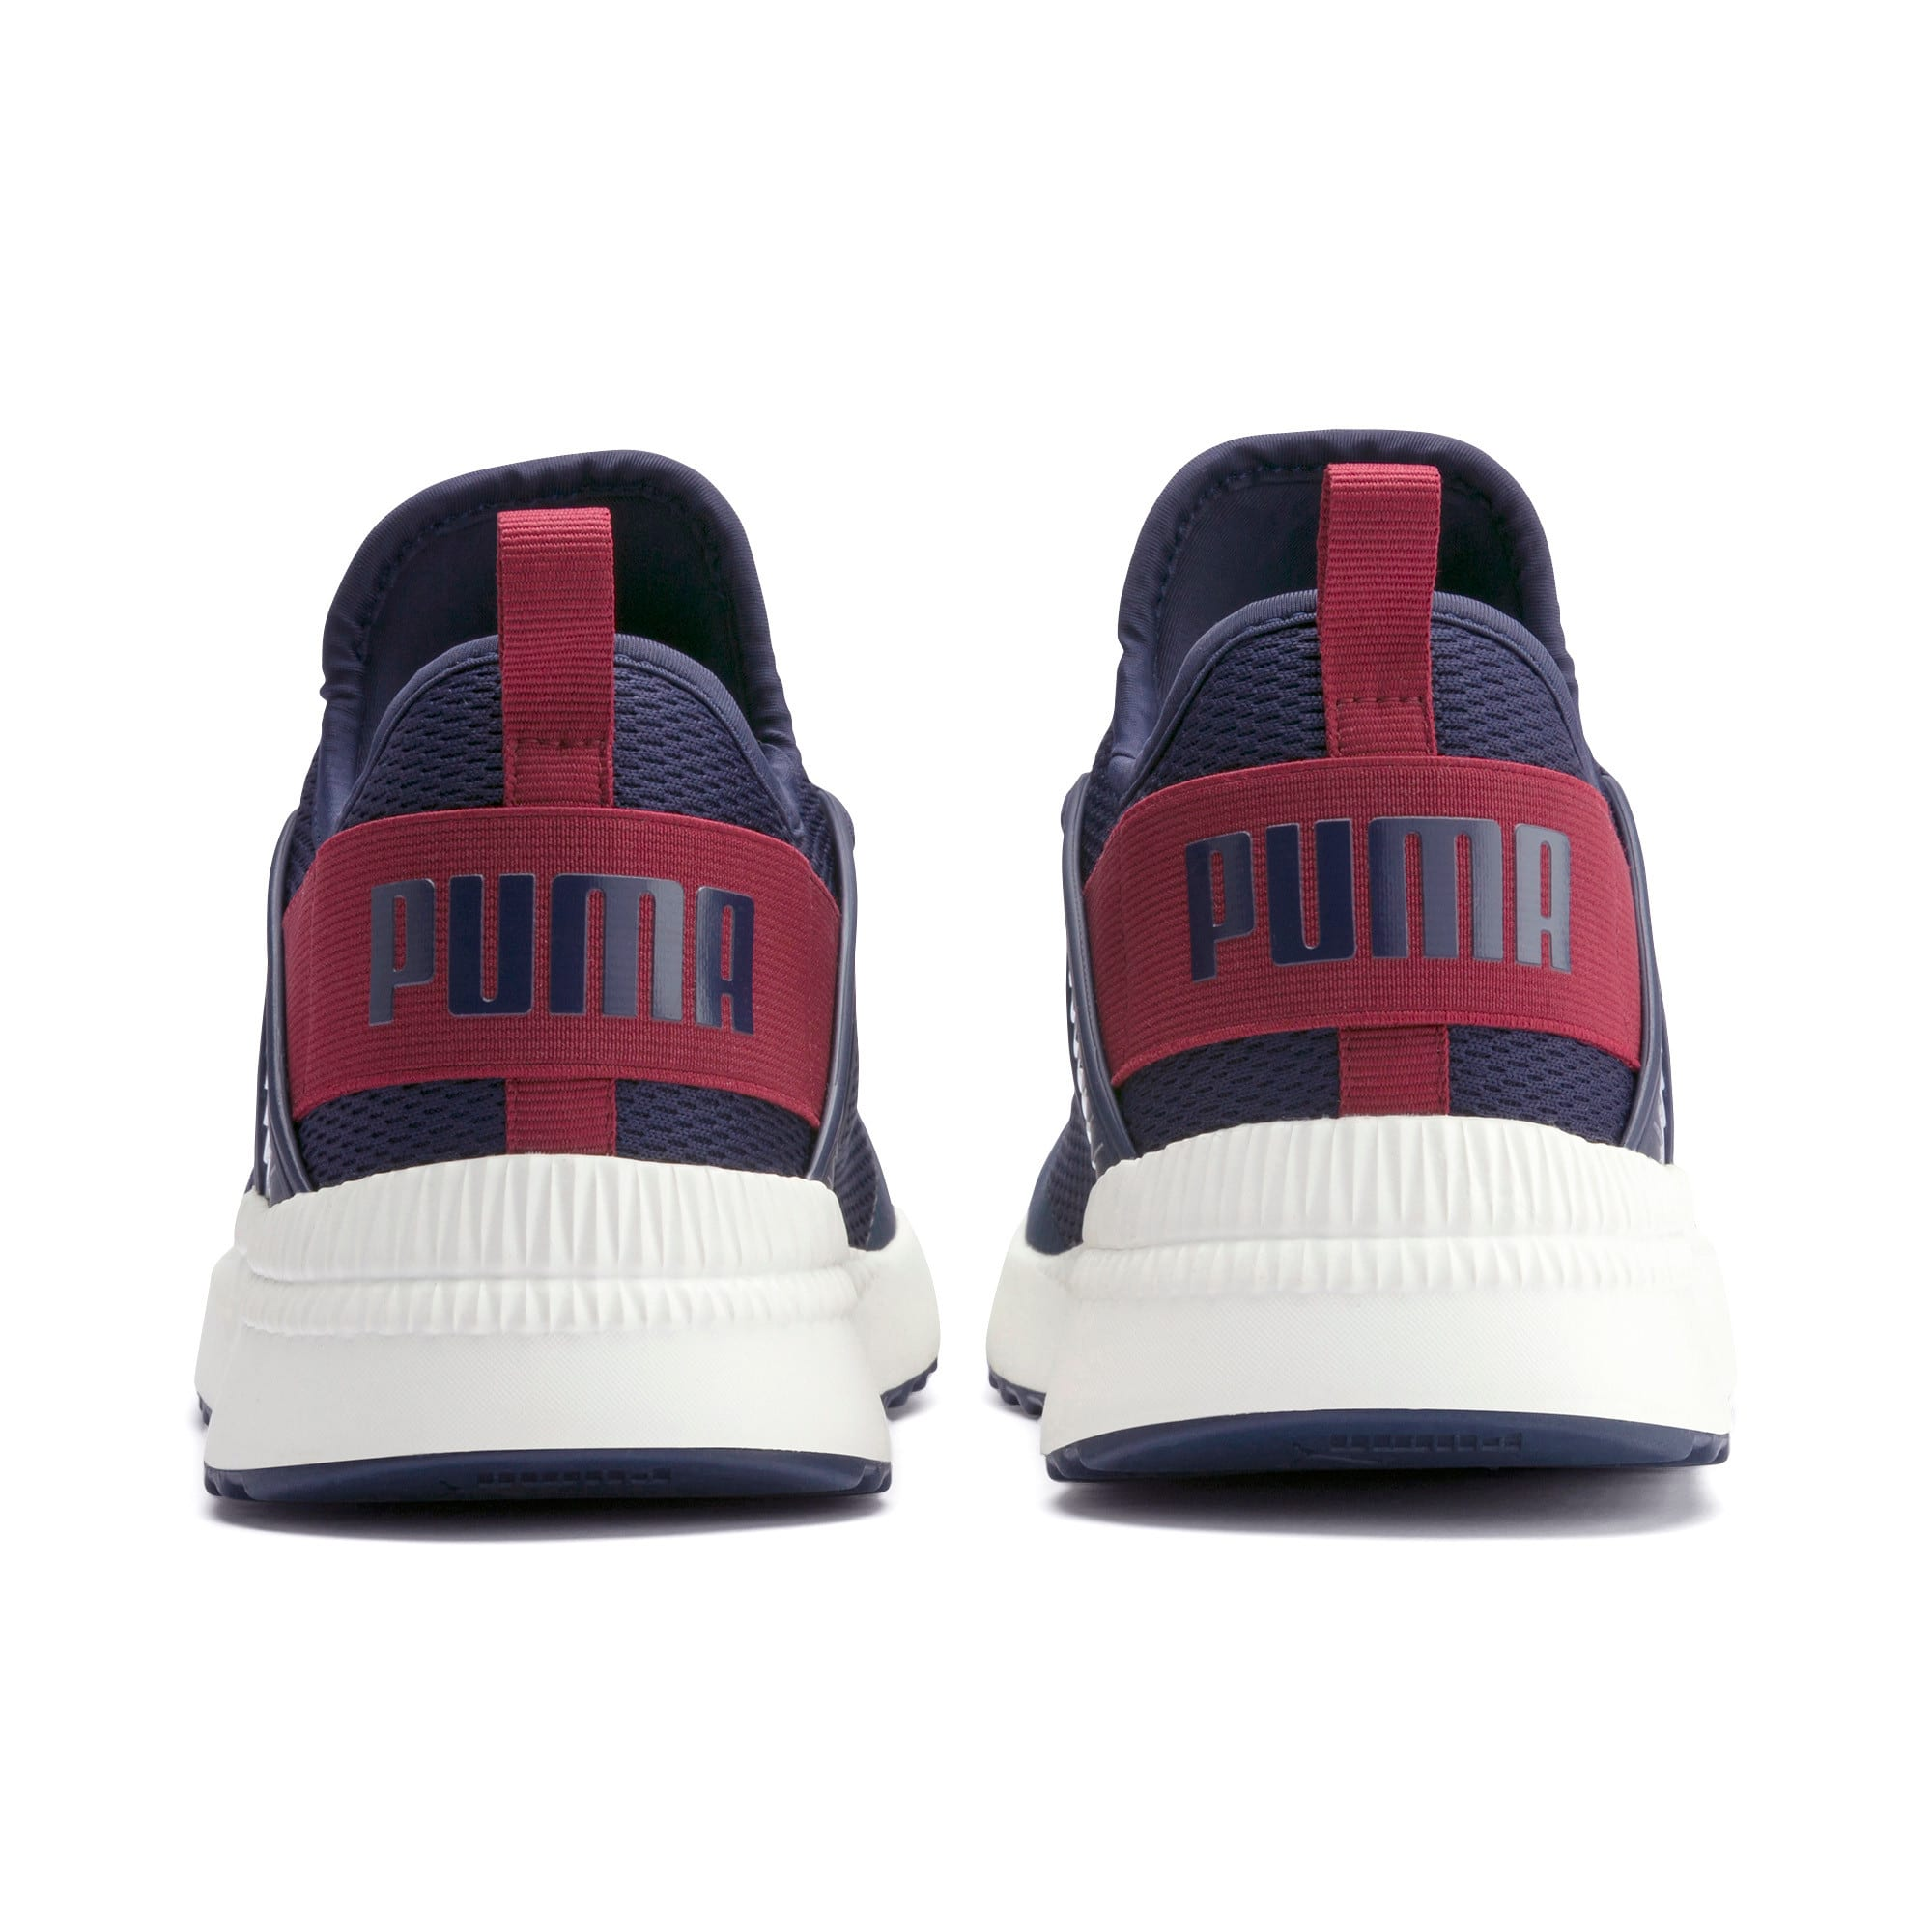 Thumbnail 5 of Pacer Next Cage Trainers, Peacoat-Rhubarb, medium-IND